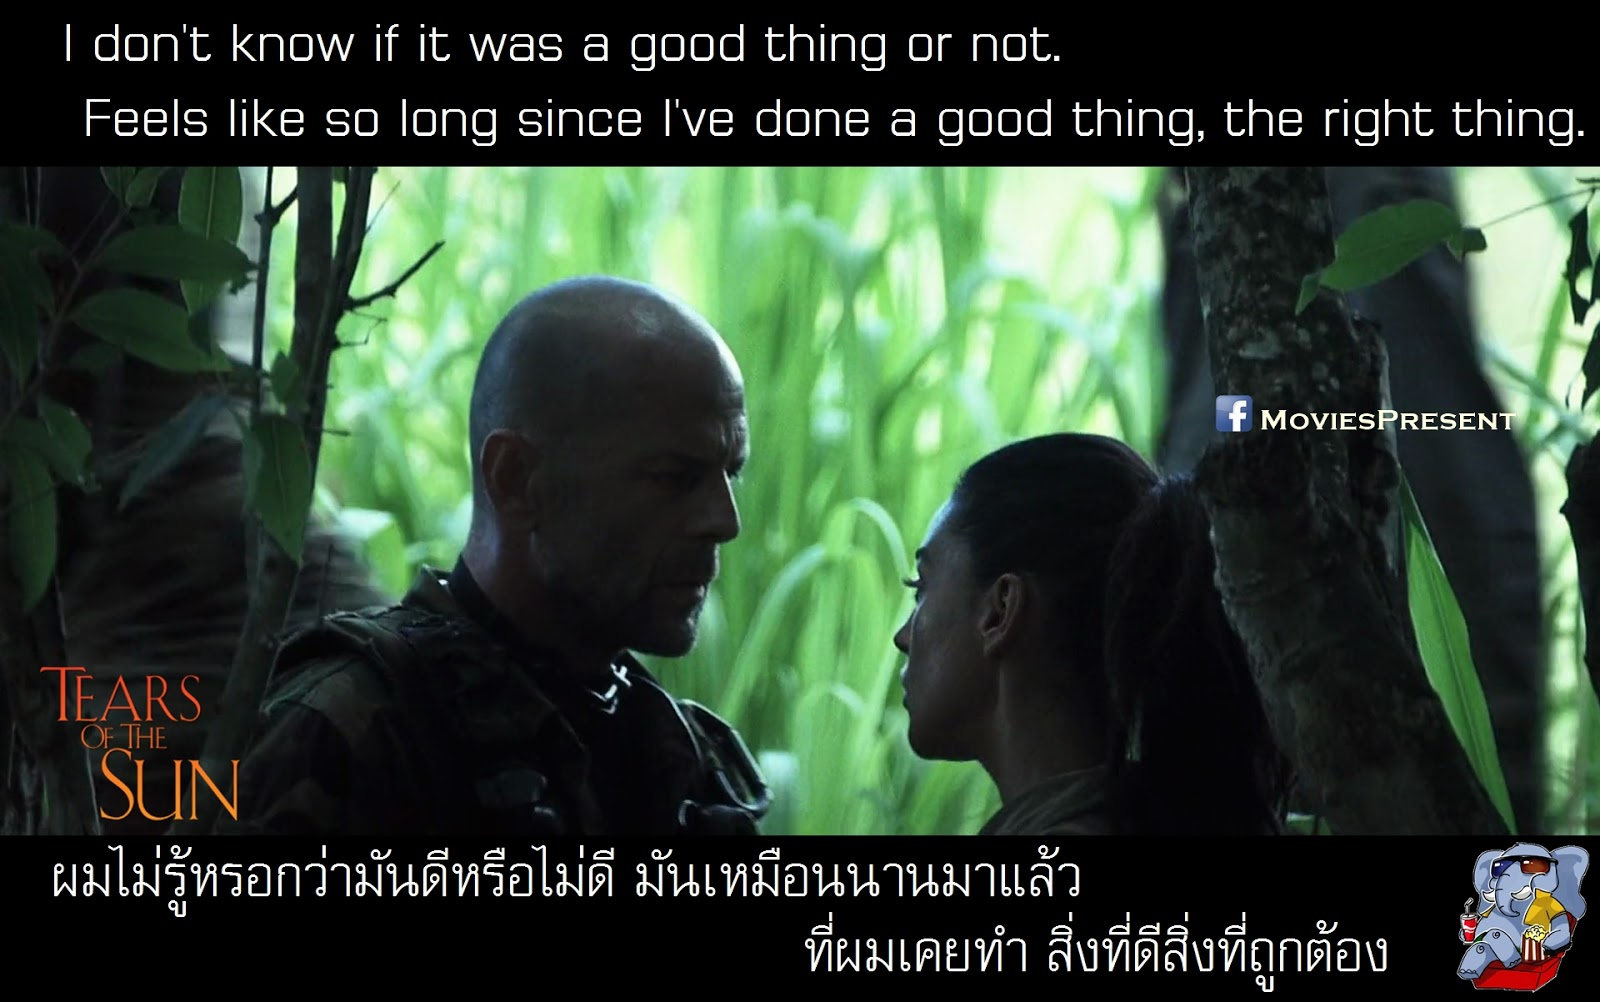 Moviesquotes By Moviespresent Tears Of The Sun ฝายทธการสรยะทมฬ